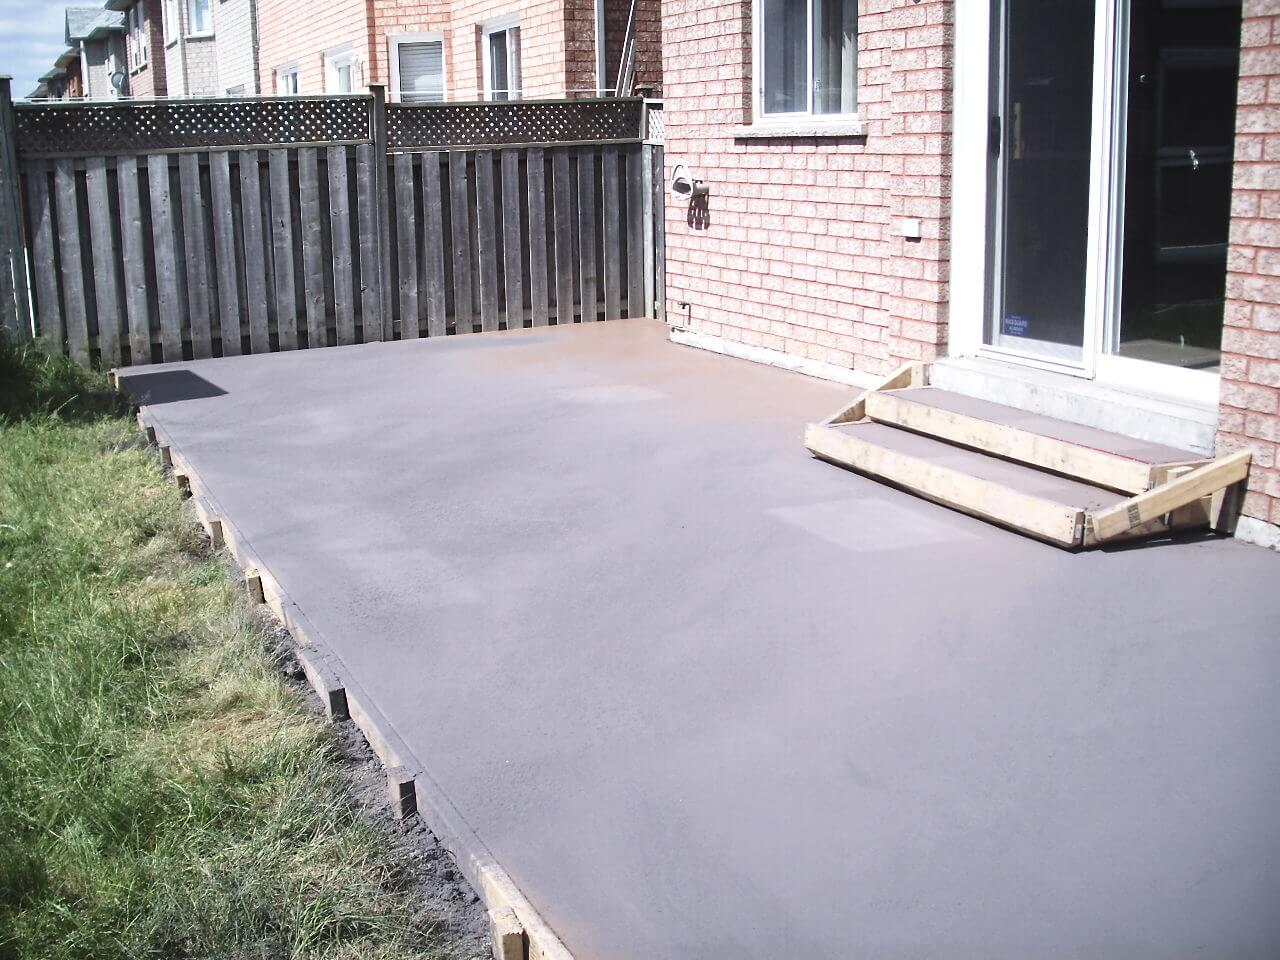 Stamped-Concrete-Construction-Contractor-Toronto-6-1